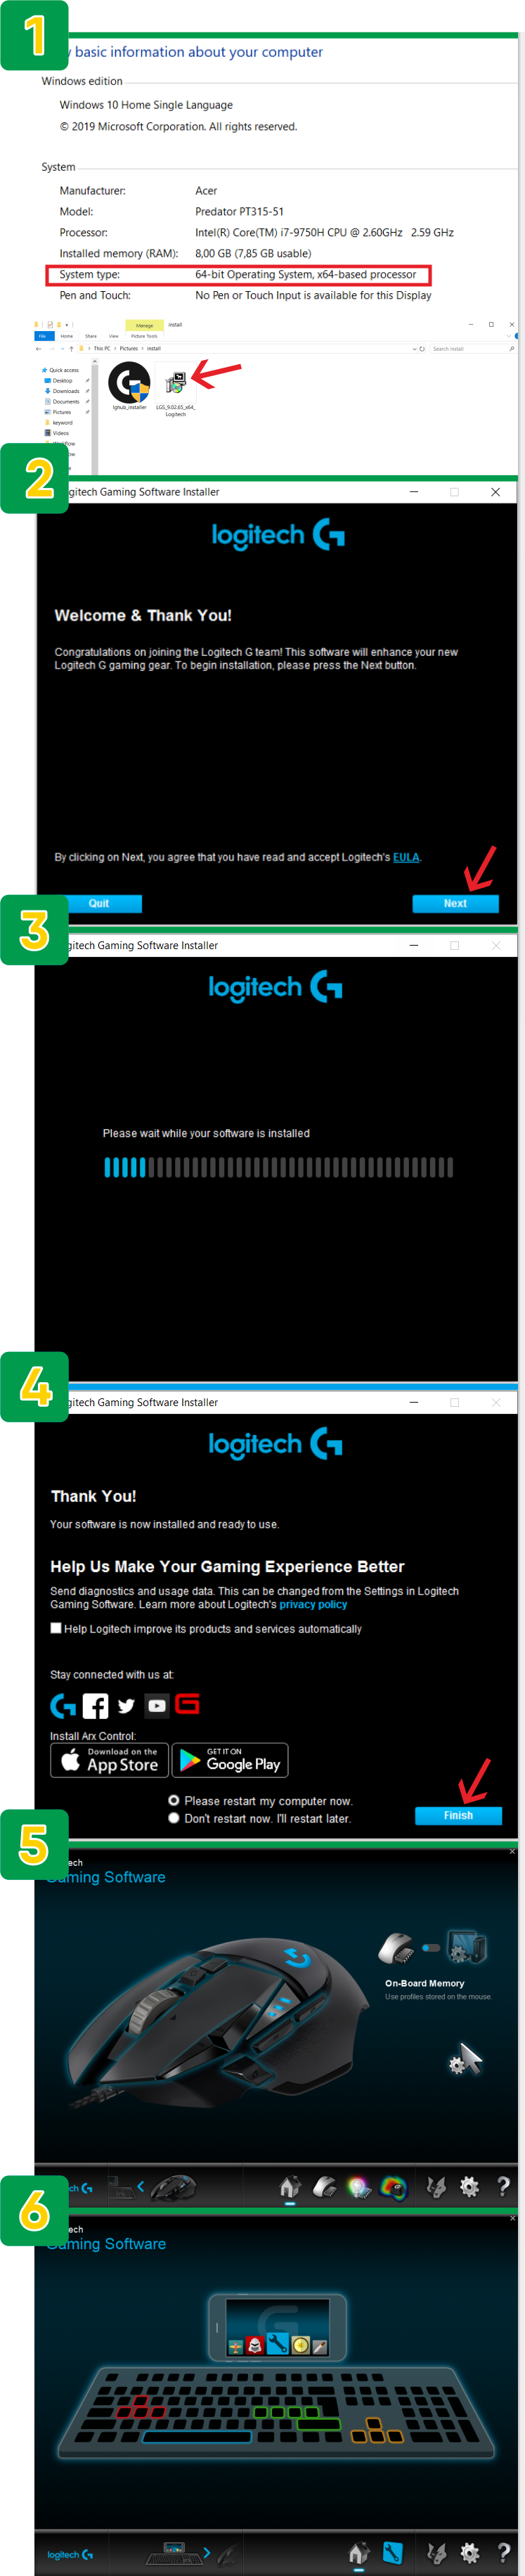 logitech gaming software install